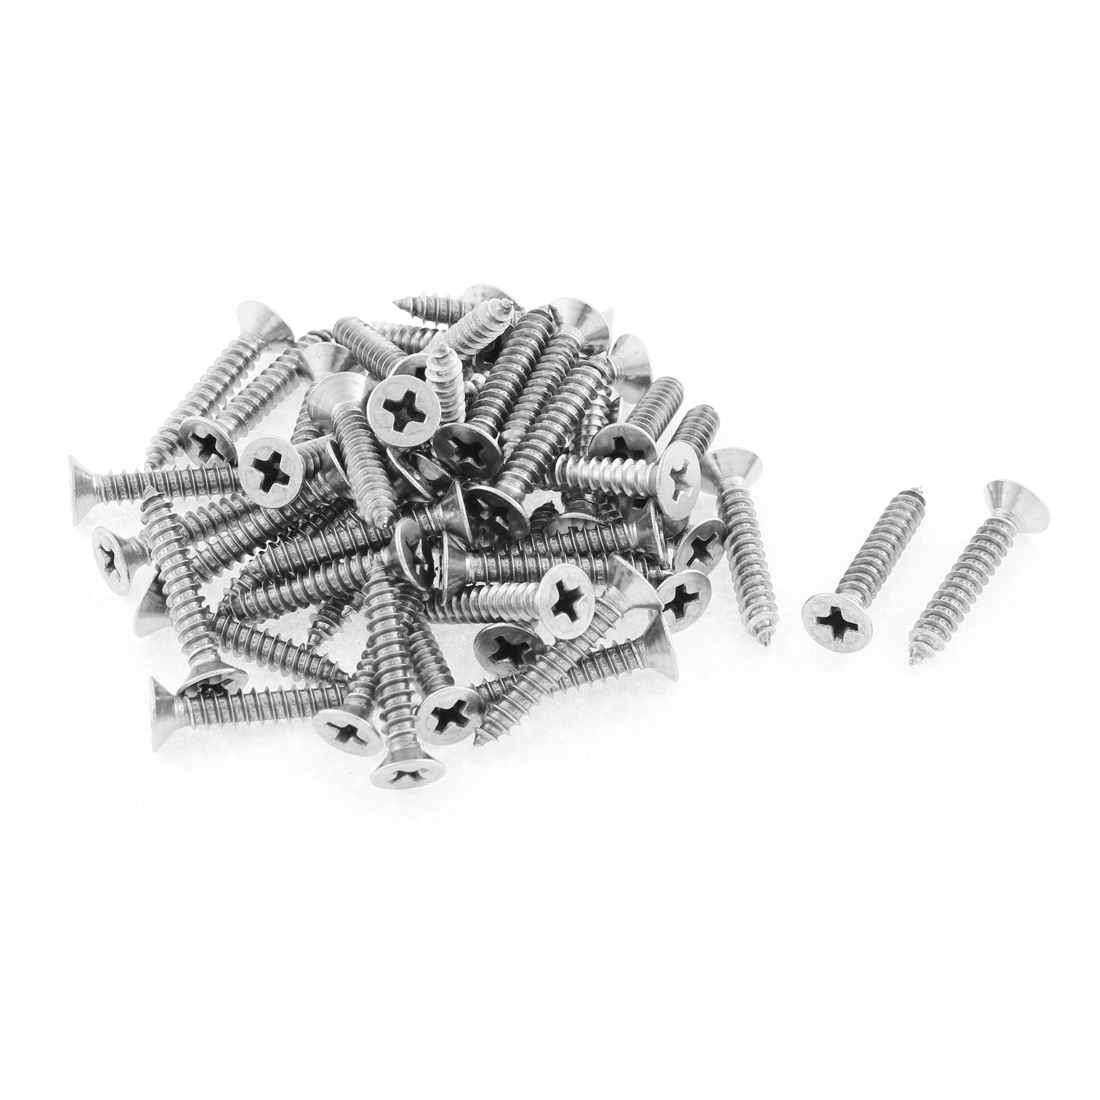 50 Pcs 4.2mmx25mm Stainless Steel Phillips Flat Head Sheet Self Tapping Screws